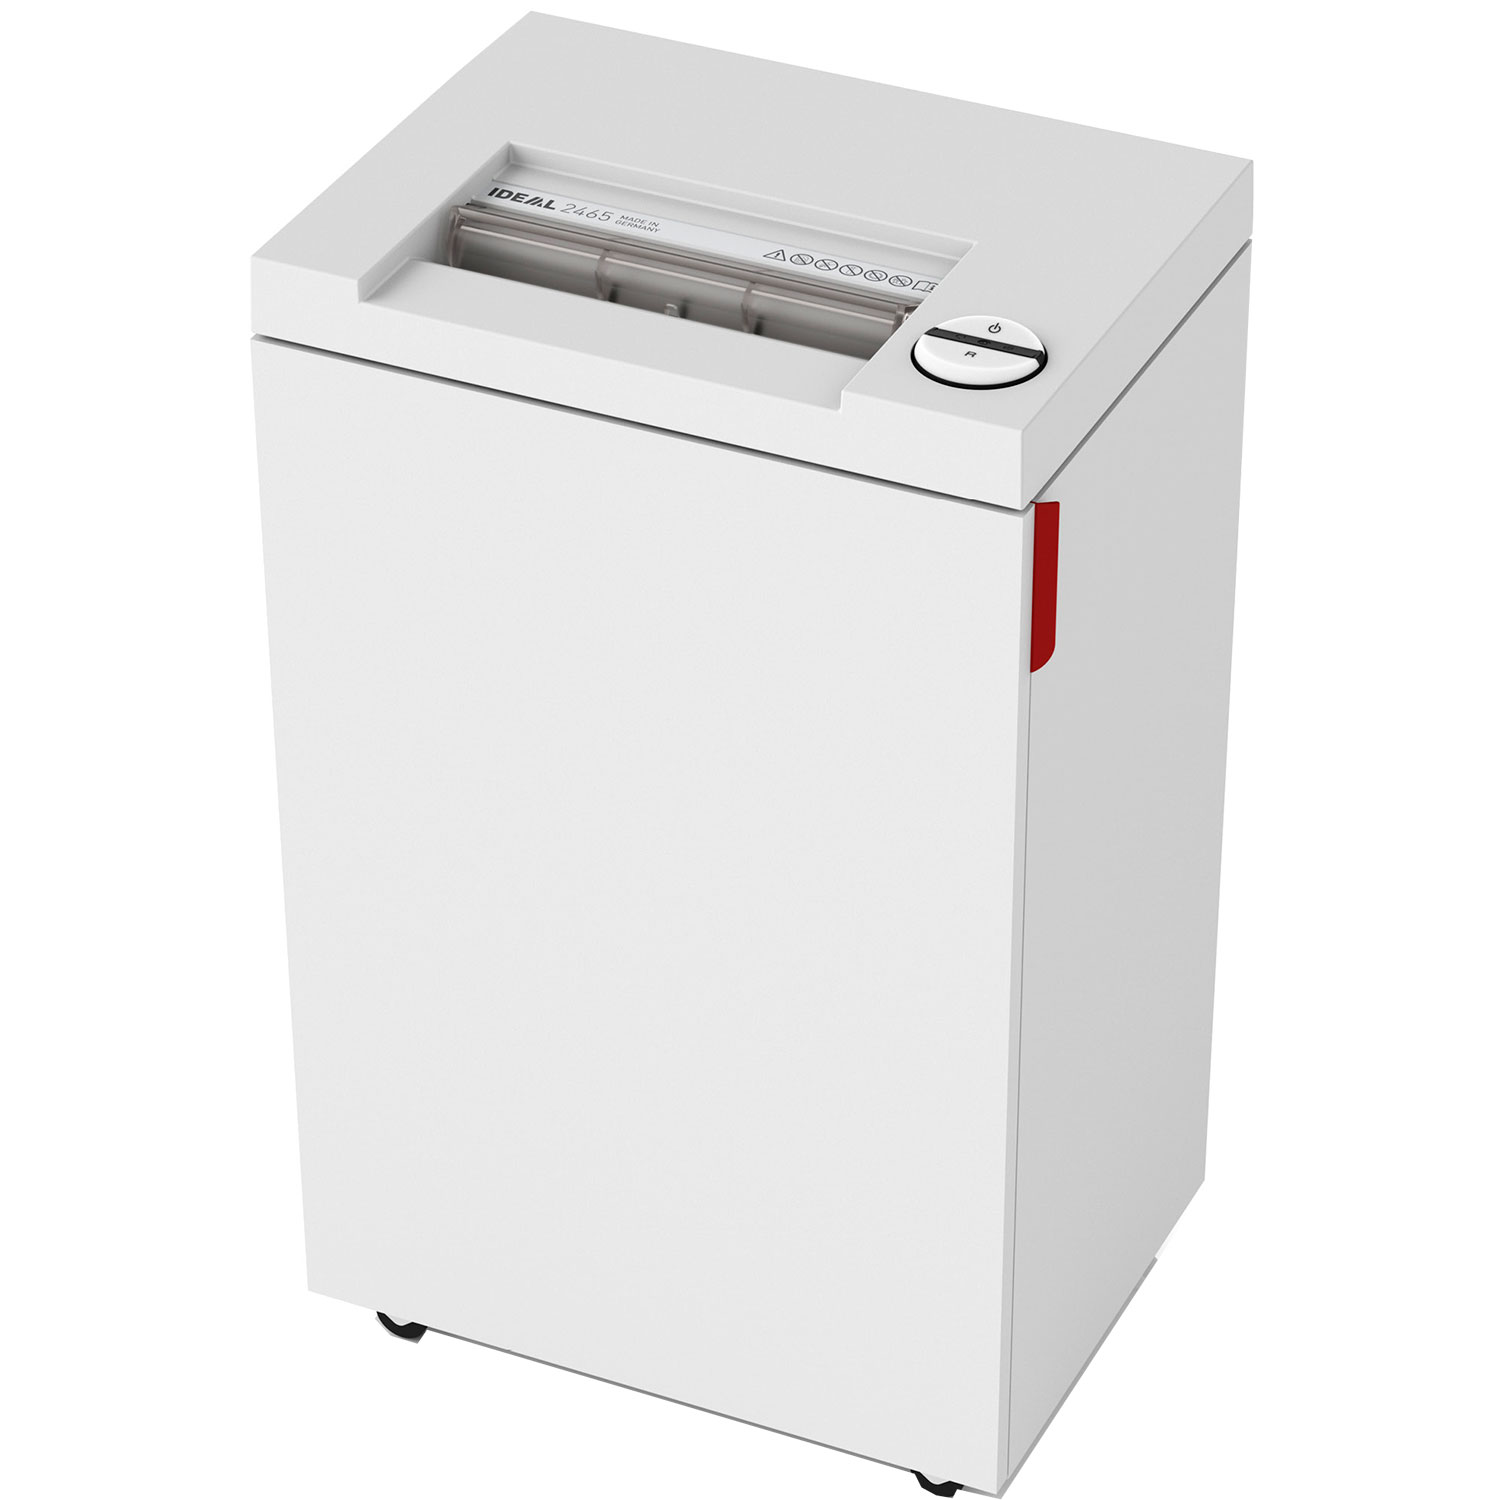 IDEAL 2465 4mm Strip Cut Deskside Paper Shredder